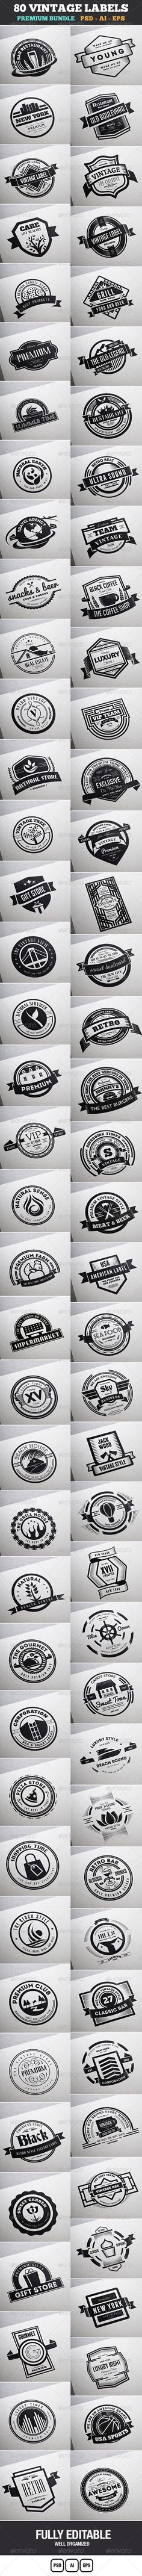 80 Vintage Labels & Badges Logos Bundle Template | Buy and Download: http://graphicriver.net/item/80-vintage-labels-badges-logos-bundle/7553006?WT.ac=category_thumb&WT.z_author=designdistrictmx&ref=ksioks